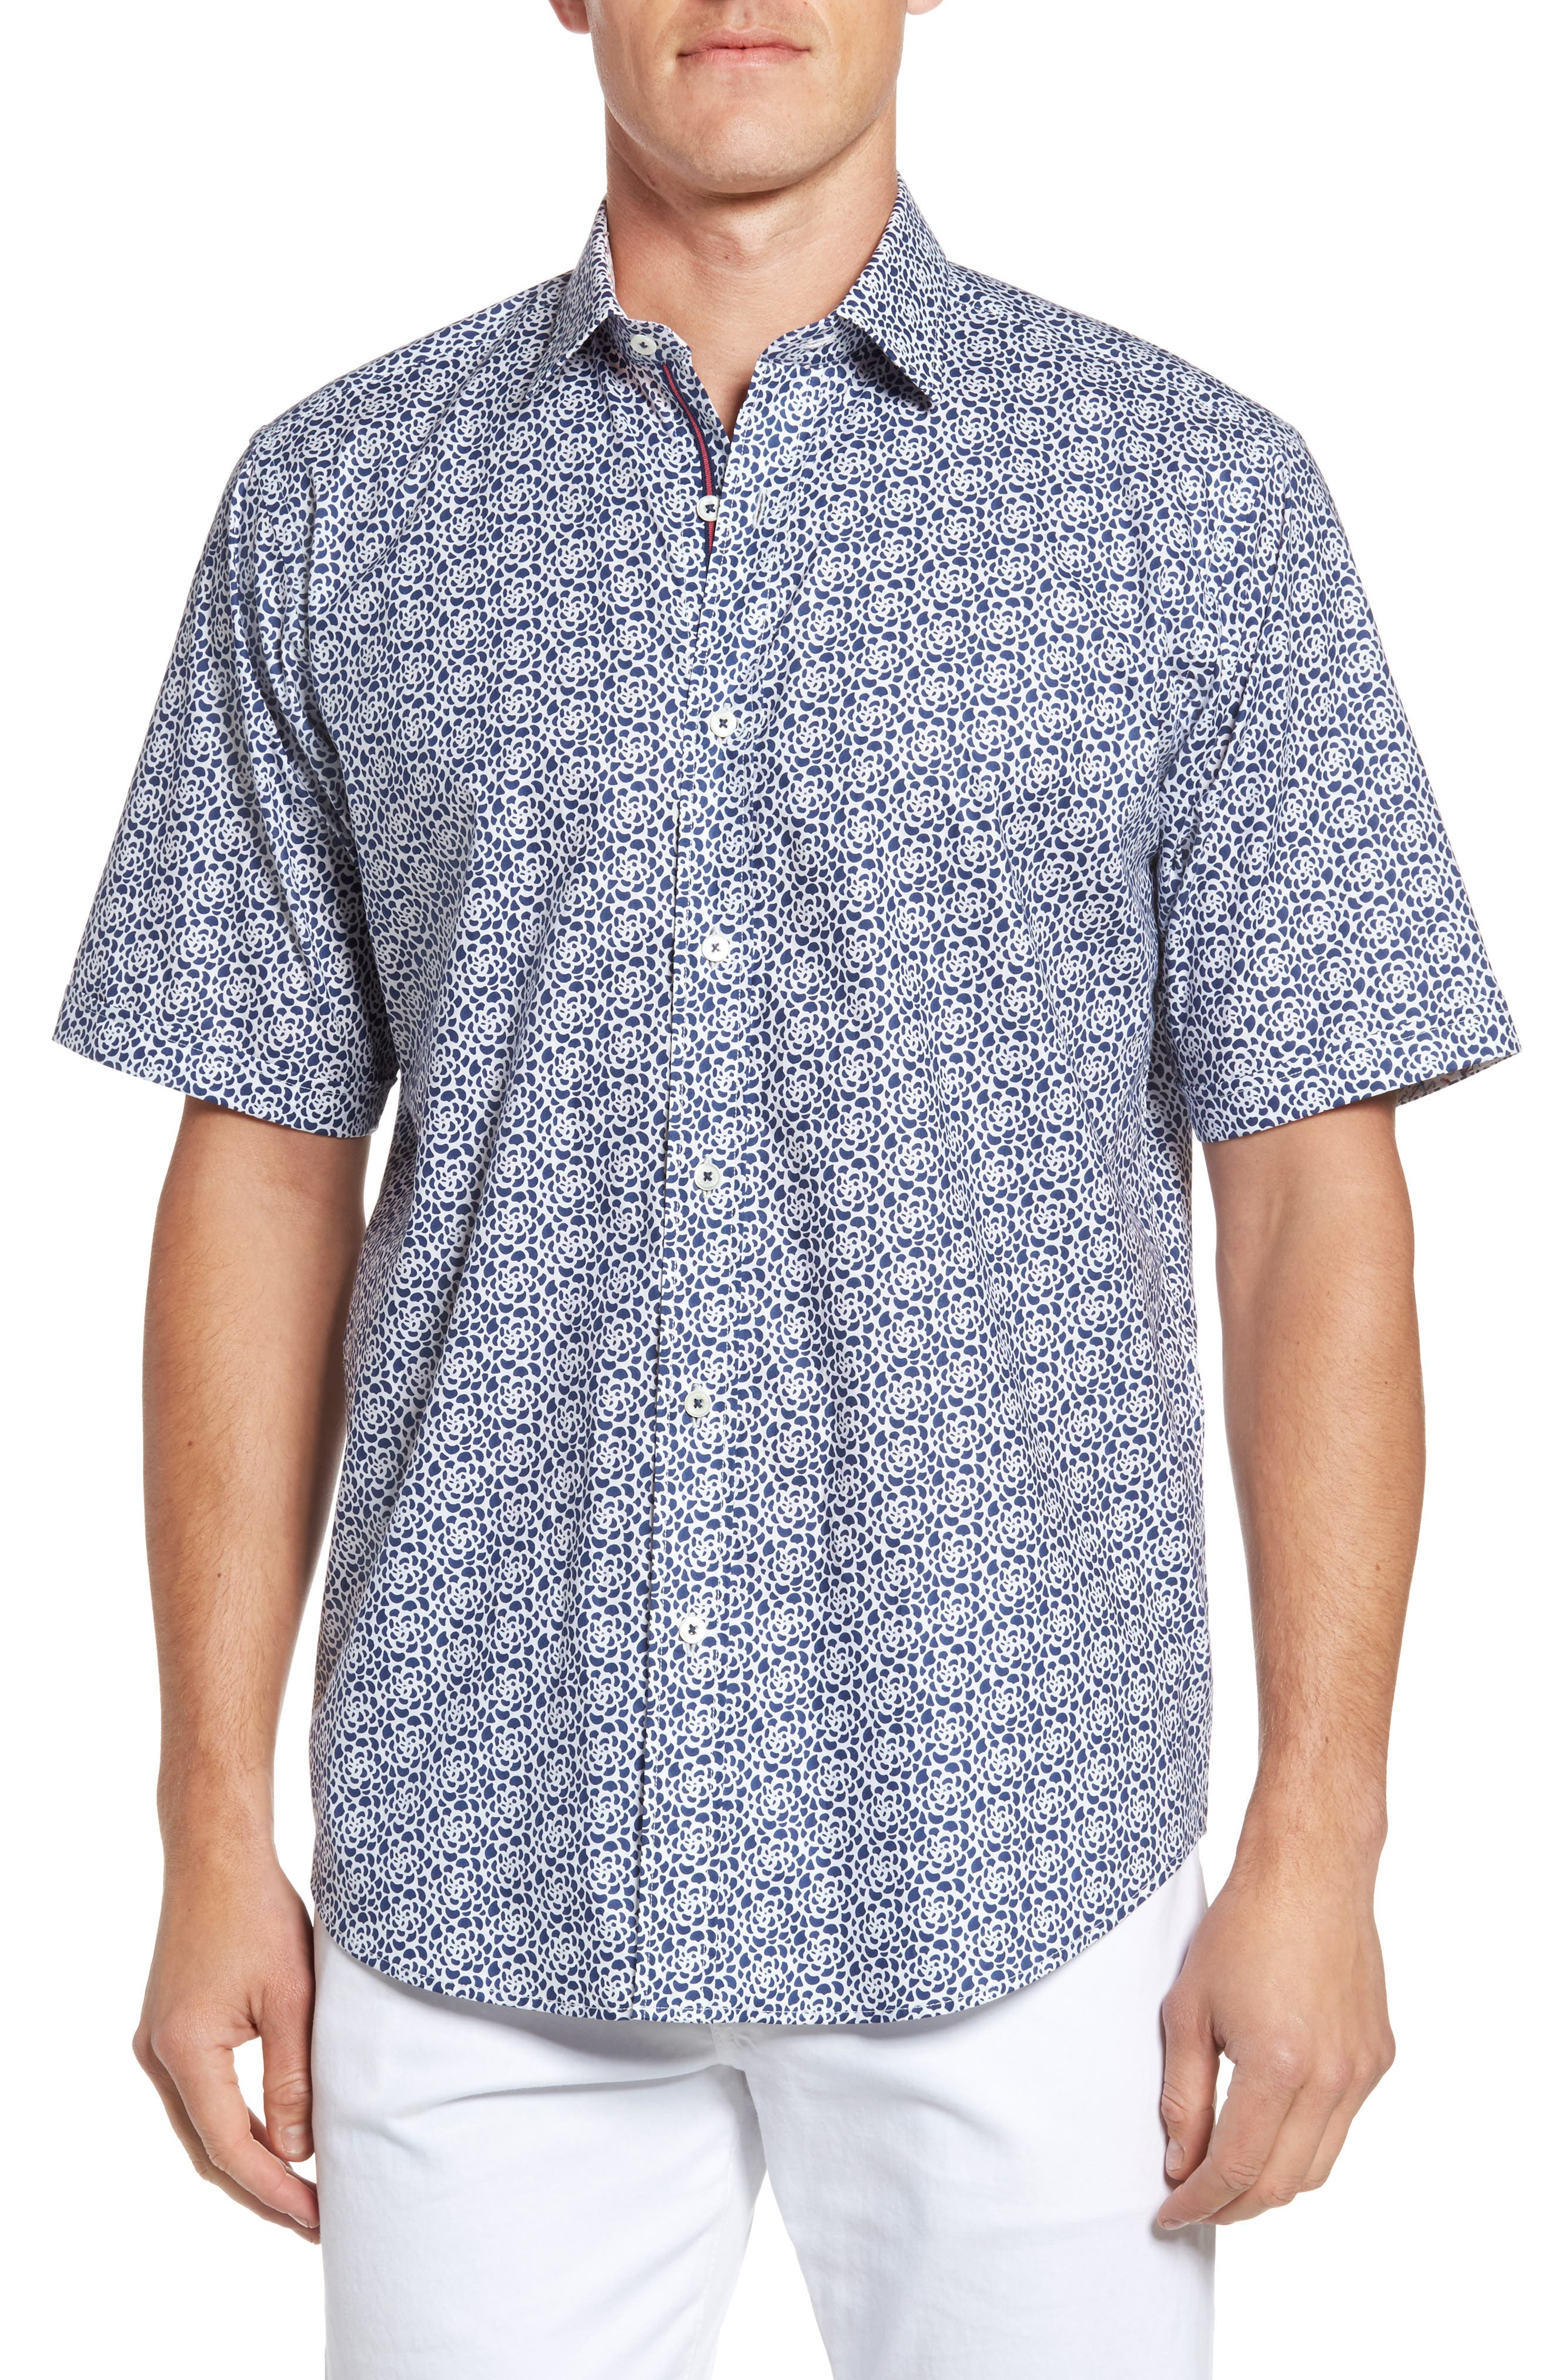 Classic Fit Print Short Sleeve Sport Shirt,                         Main,                         color, 411